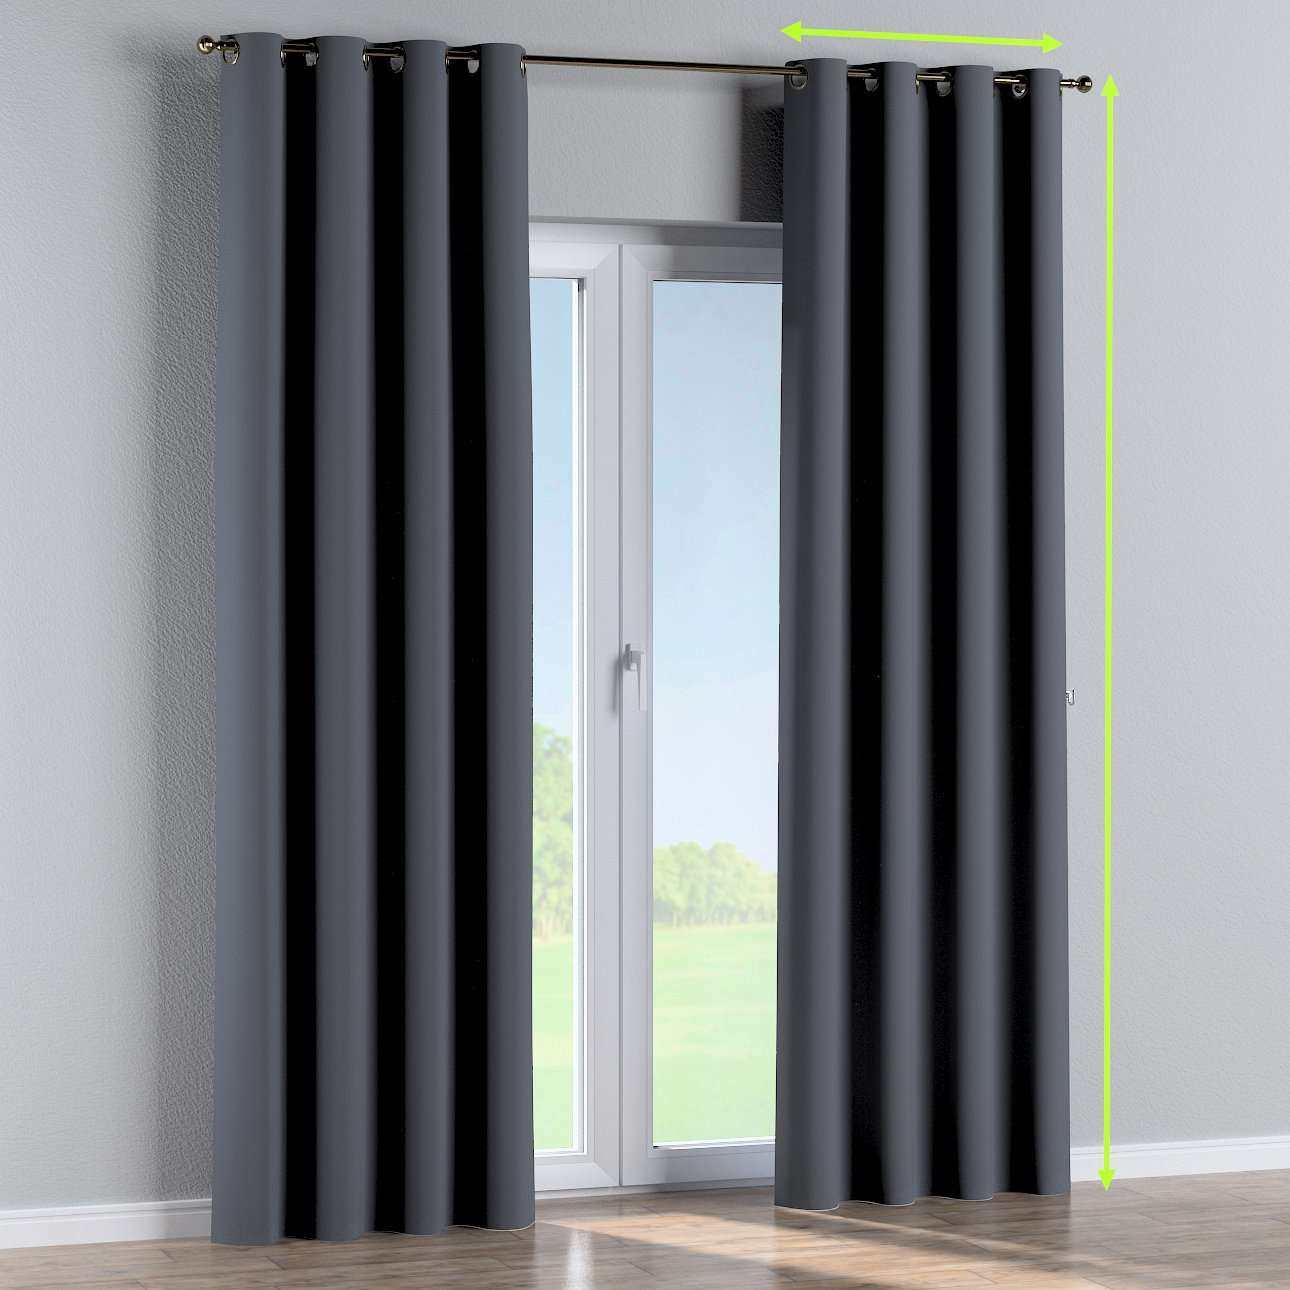 Eyelet curtain in collection Blackout, fabric: 269-76